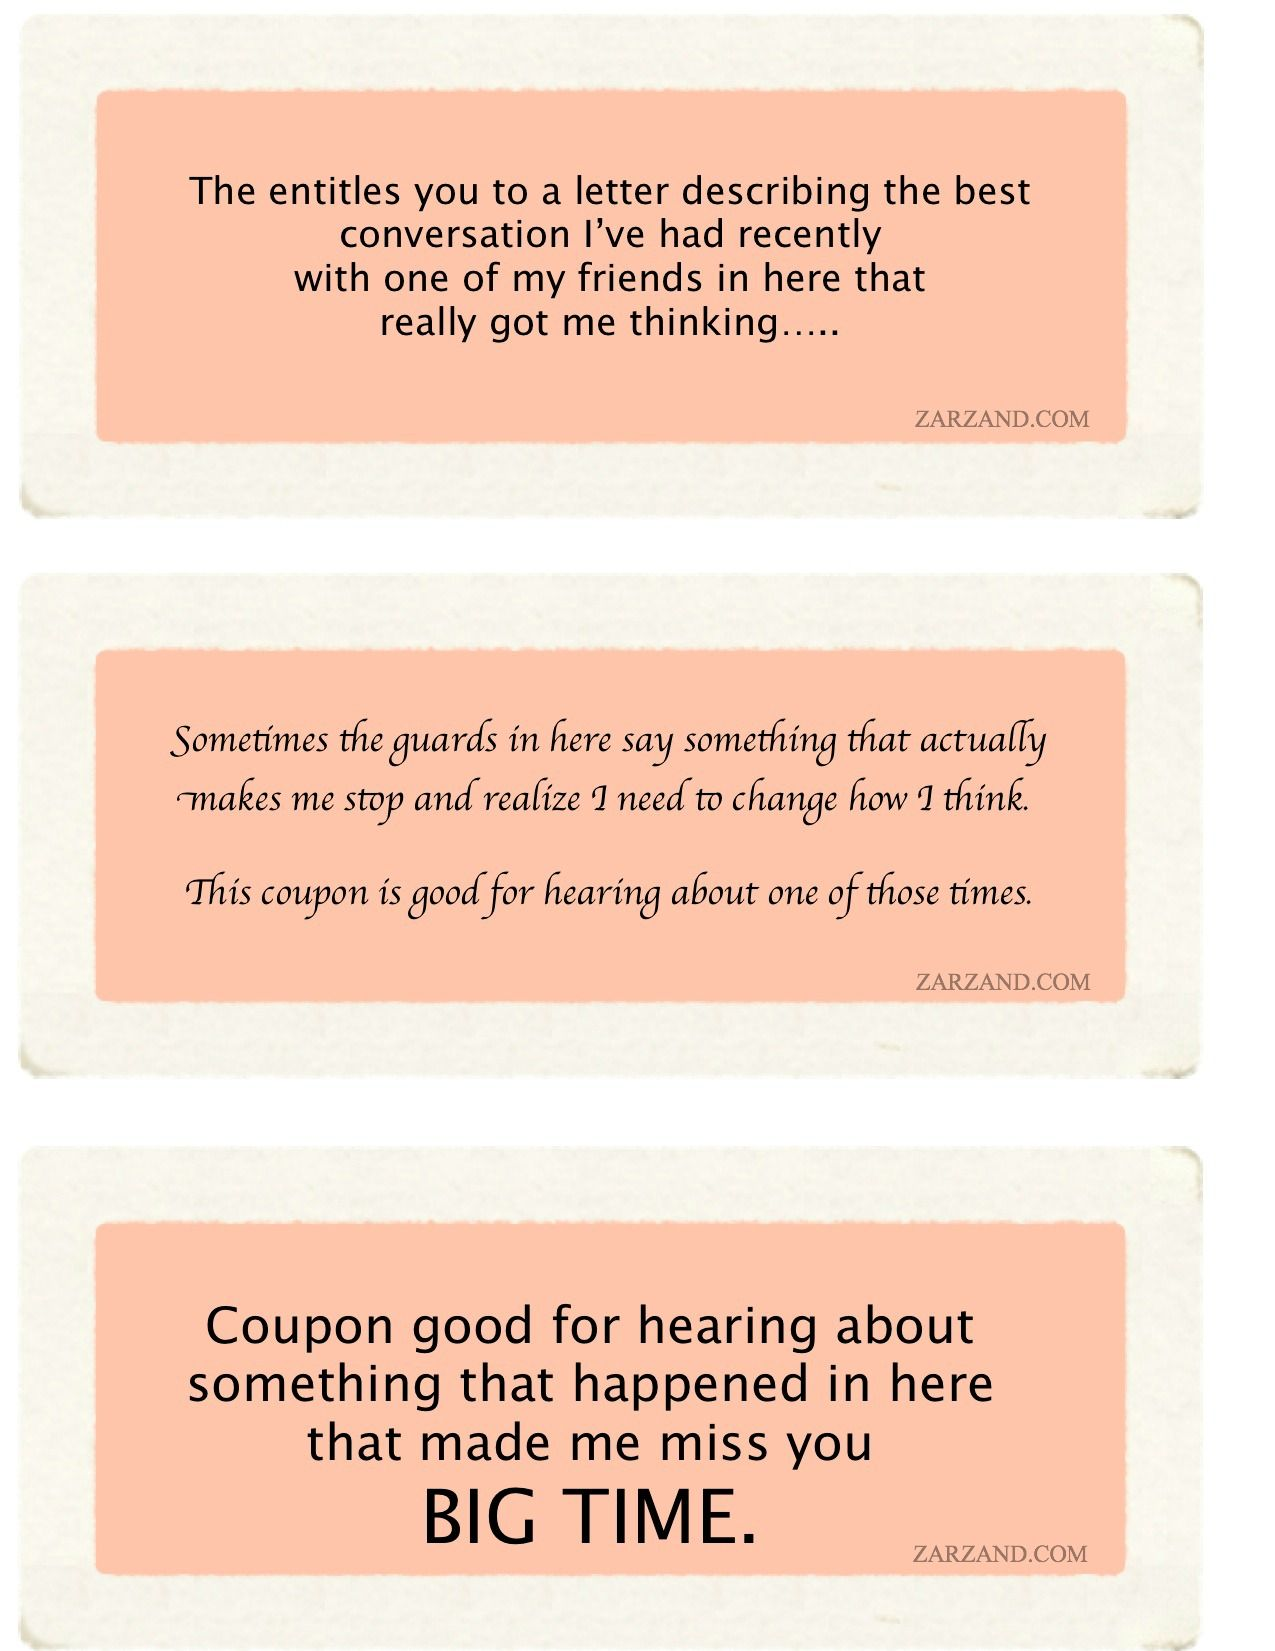 Romantic Coupons Emotional Support Couples Love Free Romance